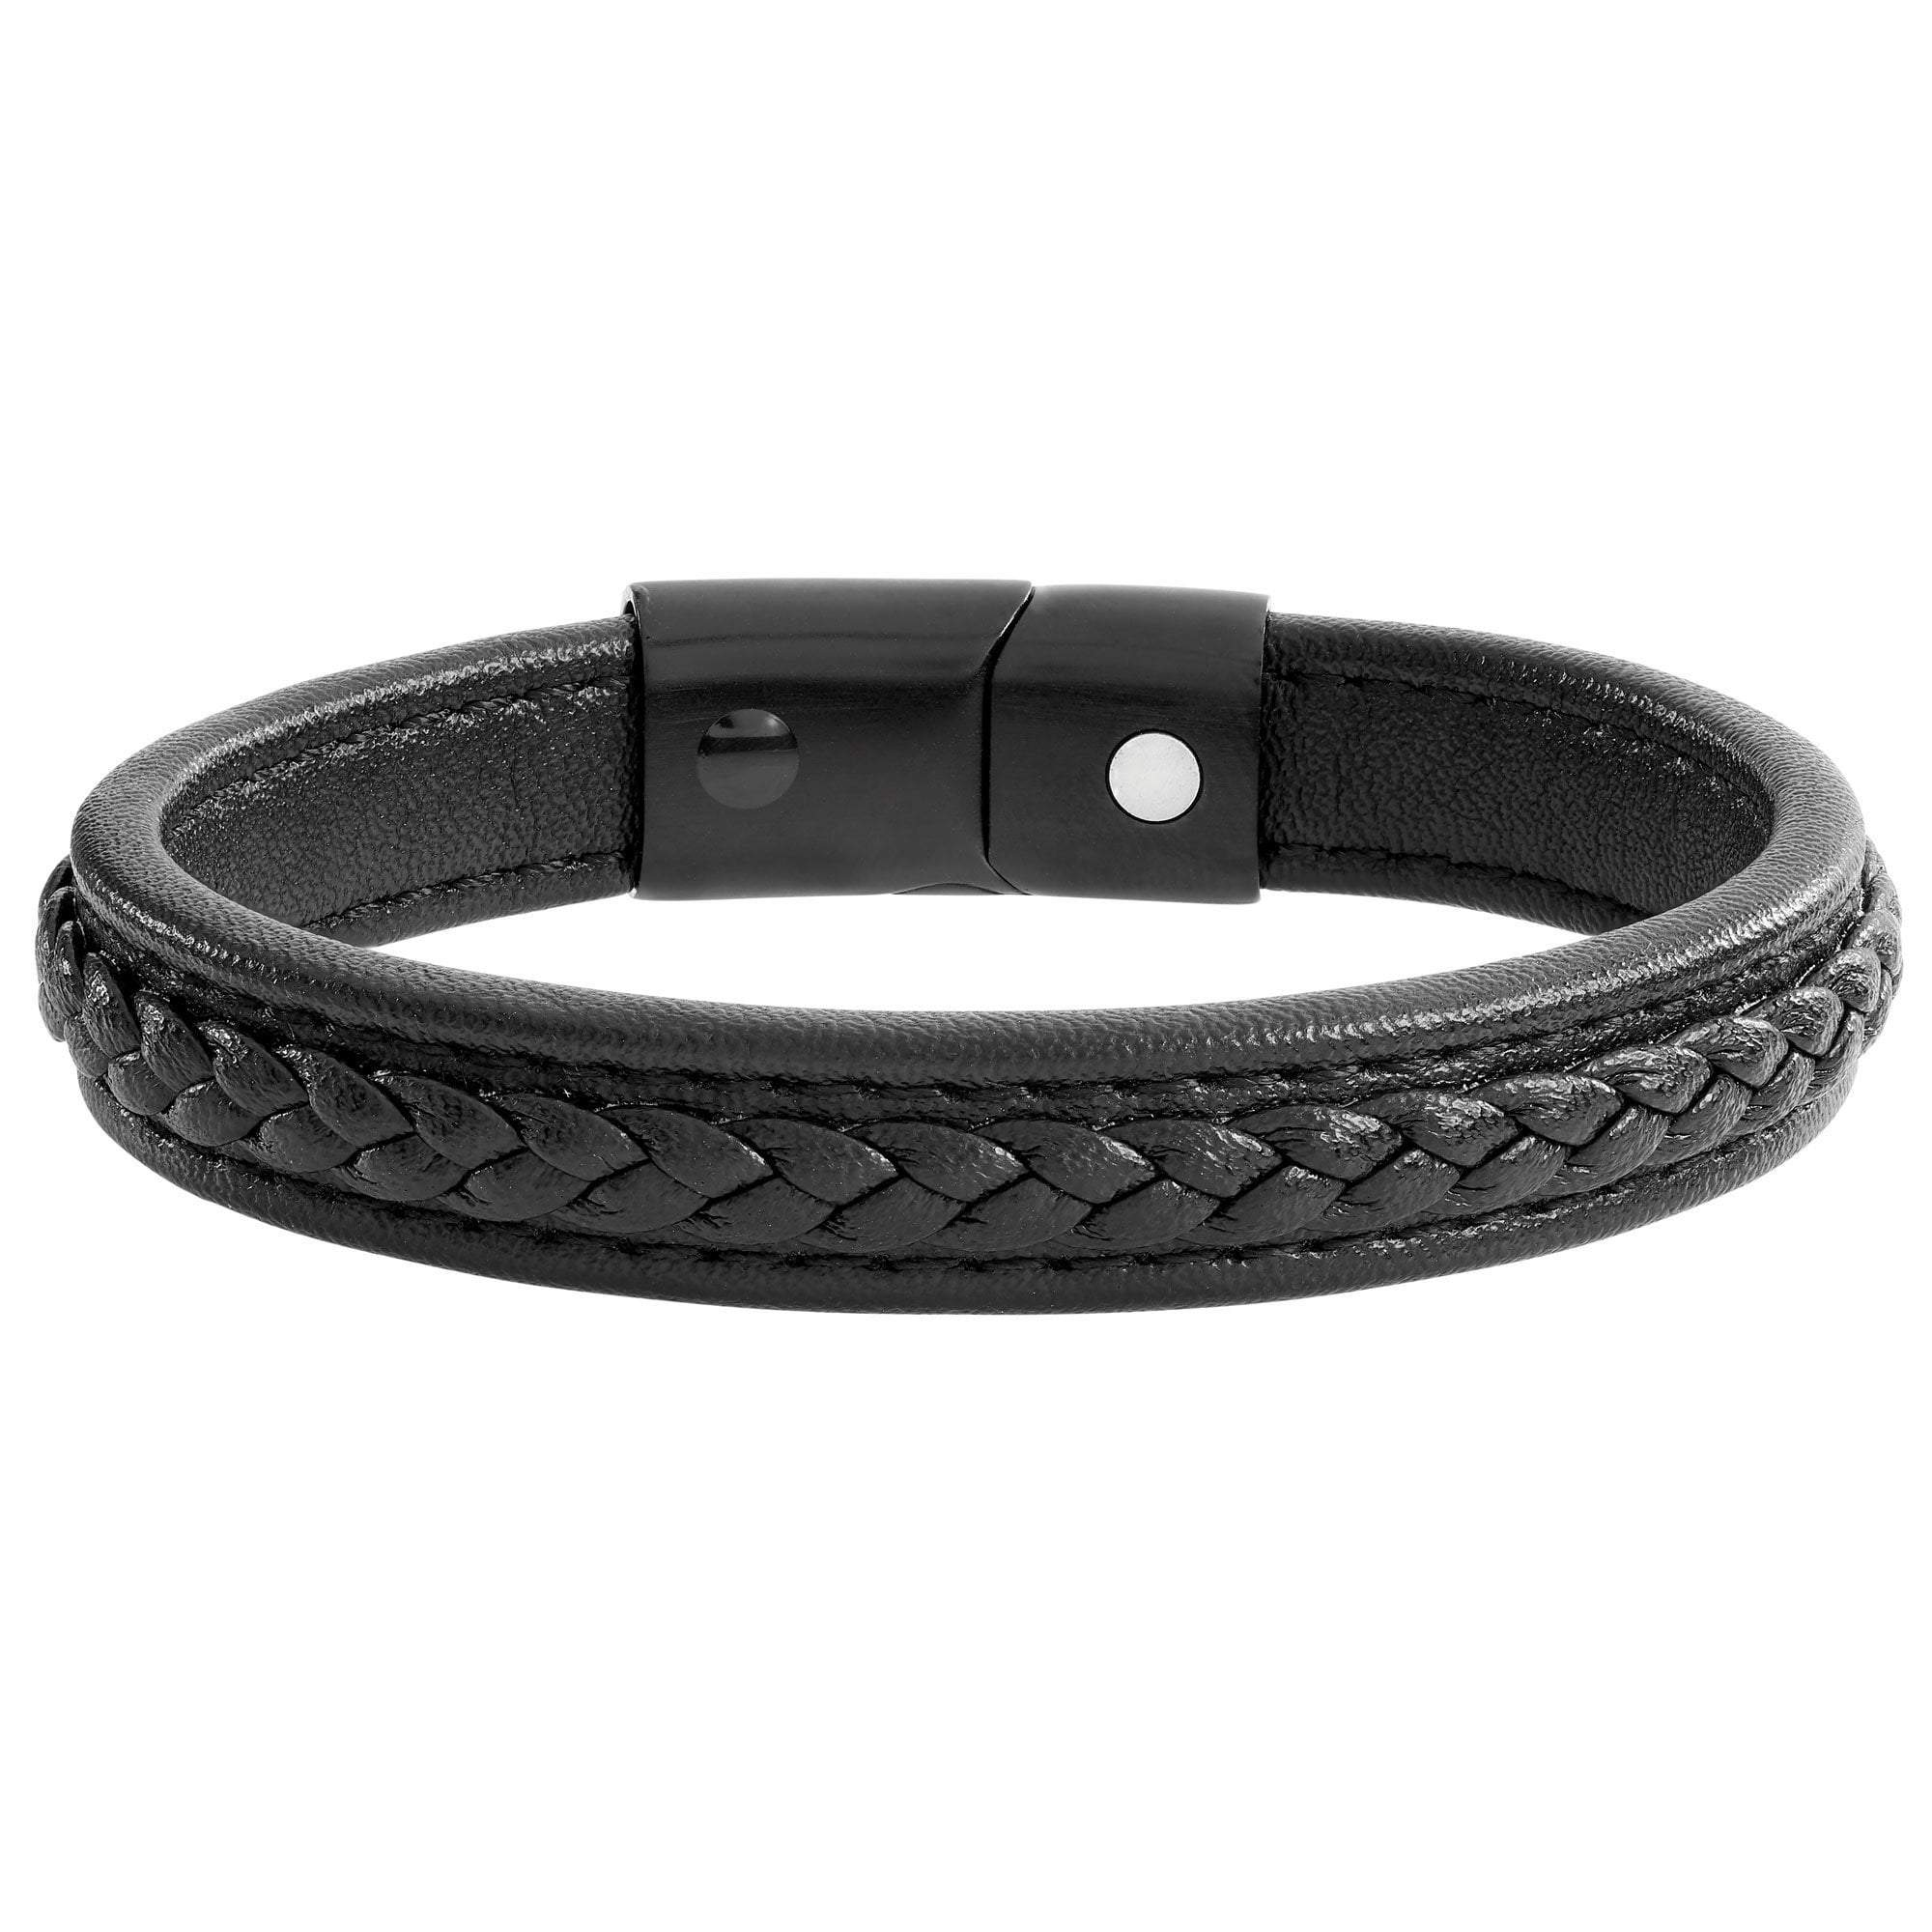 Leather Magnetic Bracelet S (16cm) Black Magnetic Leather Plait Bracelet